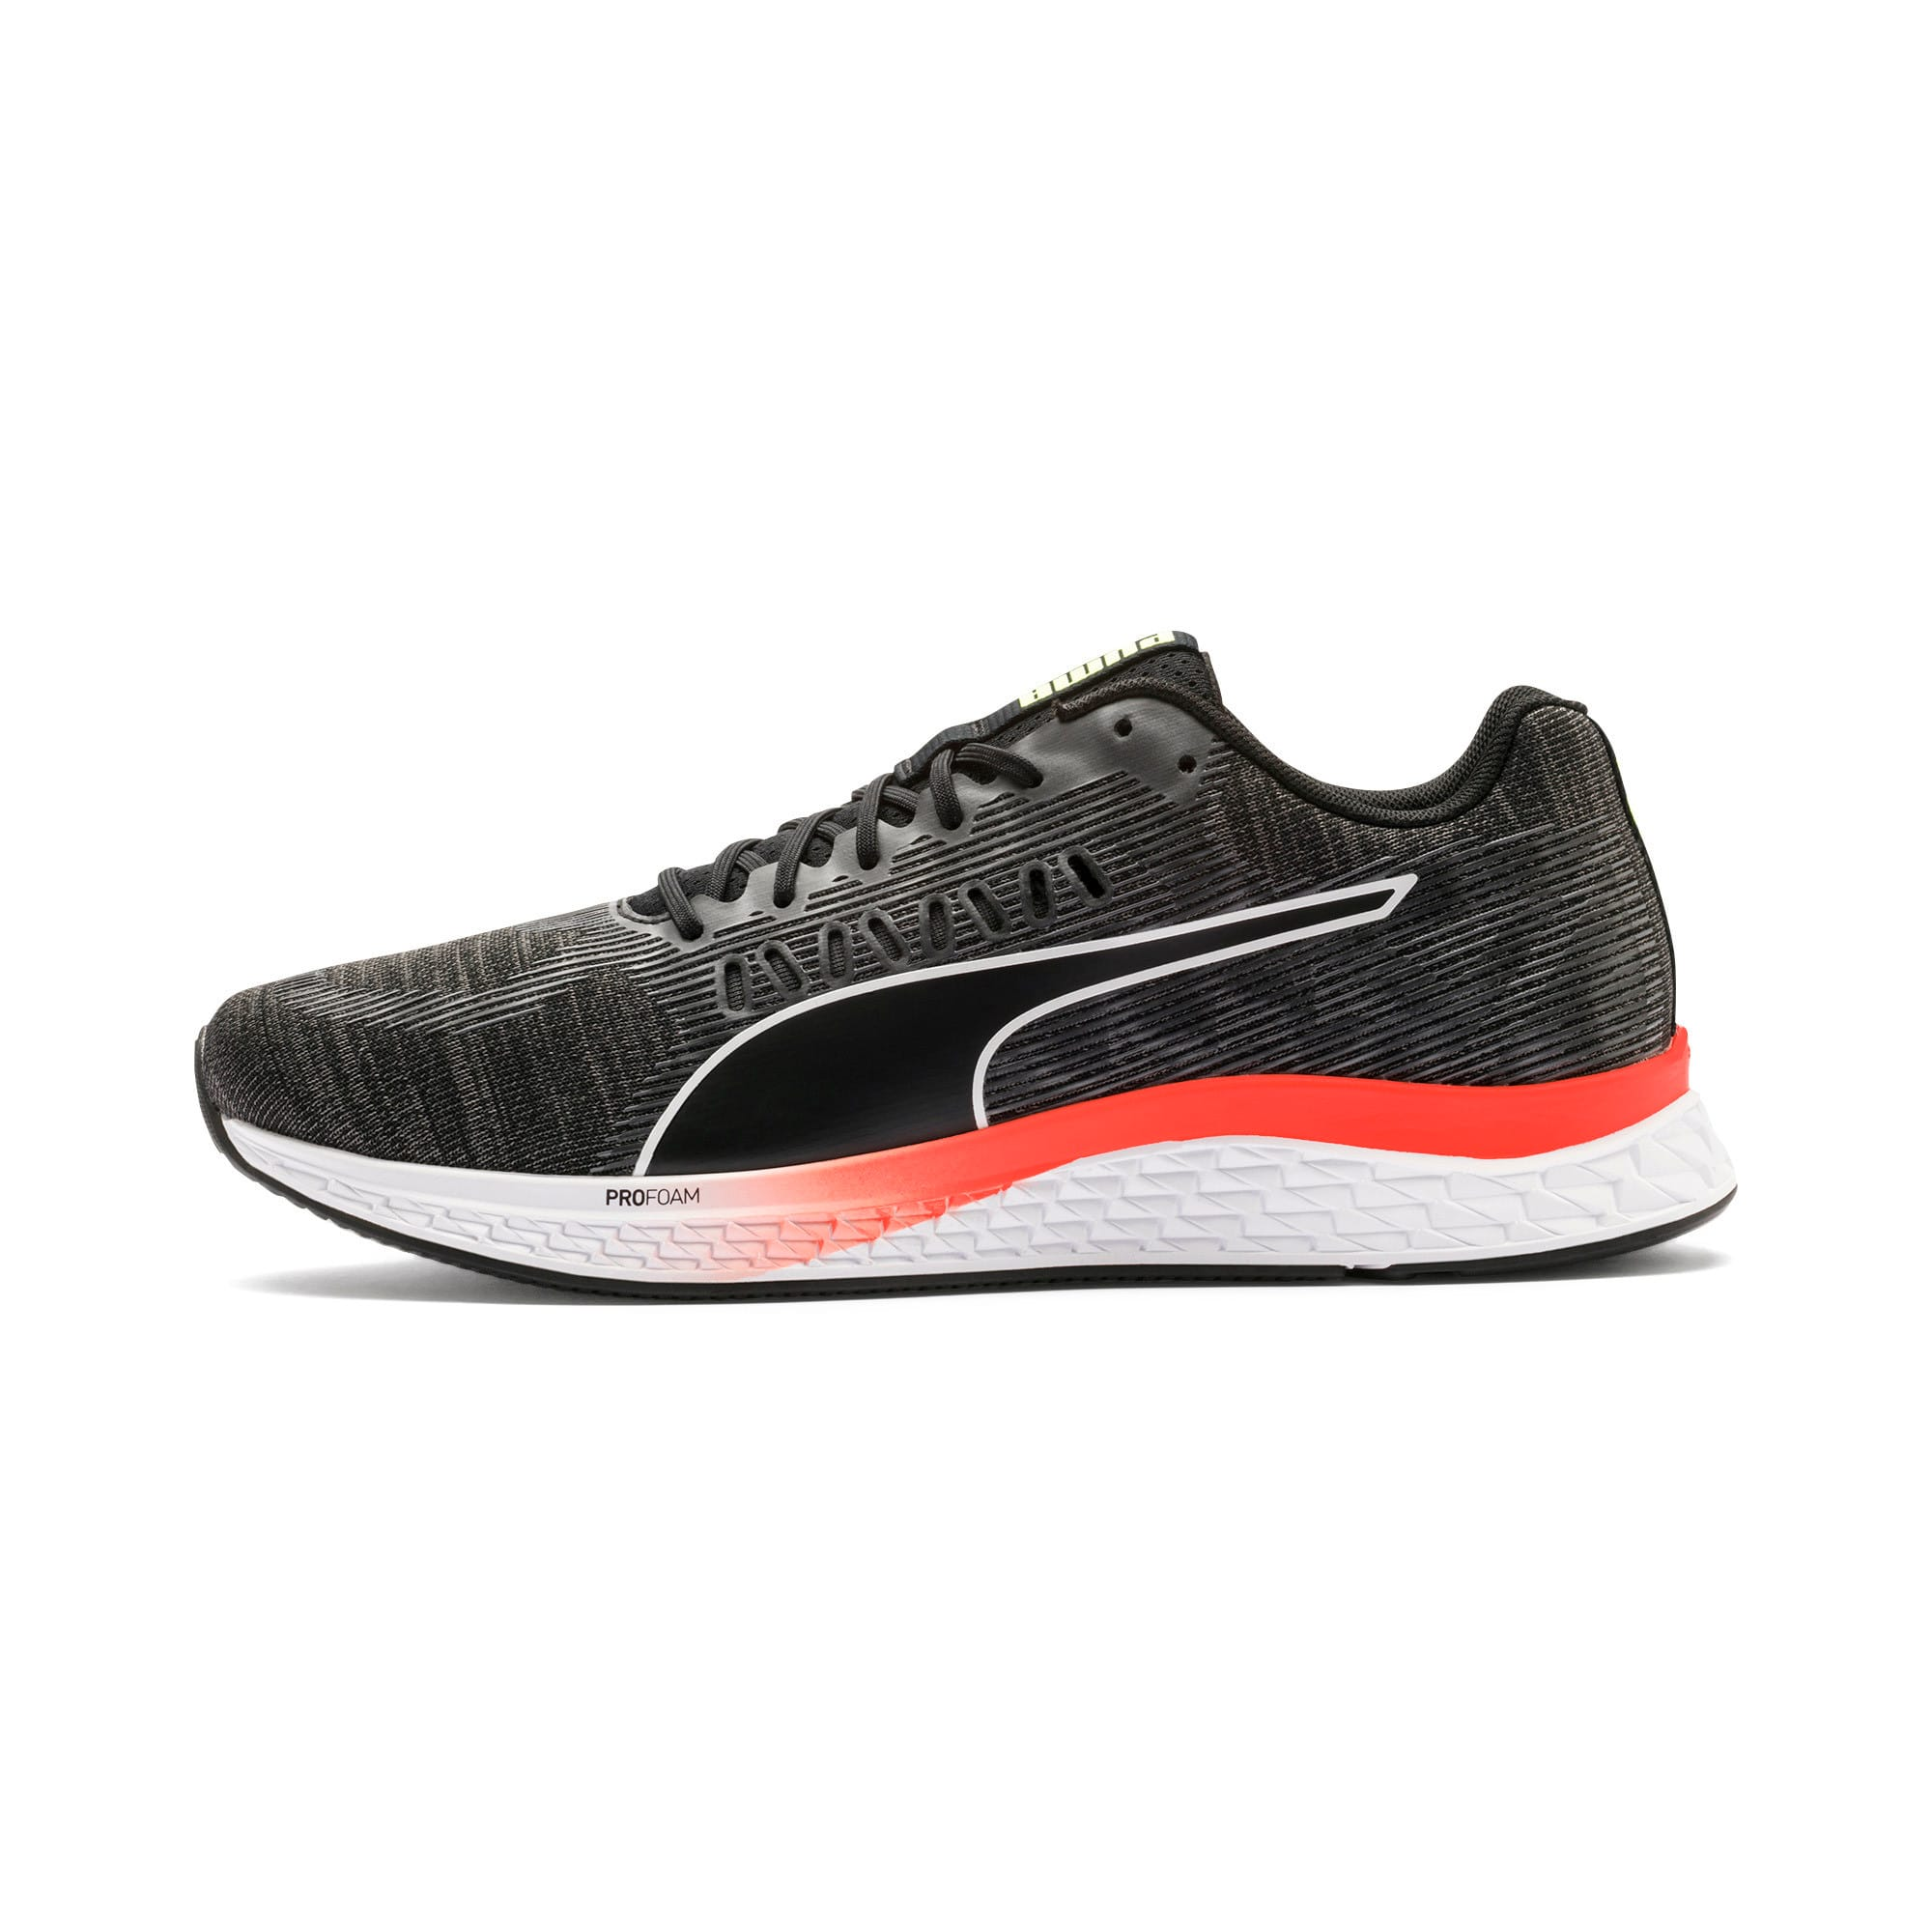 Thumbnail 1 of SPEED SUTAMINA Running Shoes, Black-CASTLEROCK-Yellow-Red, medium